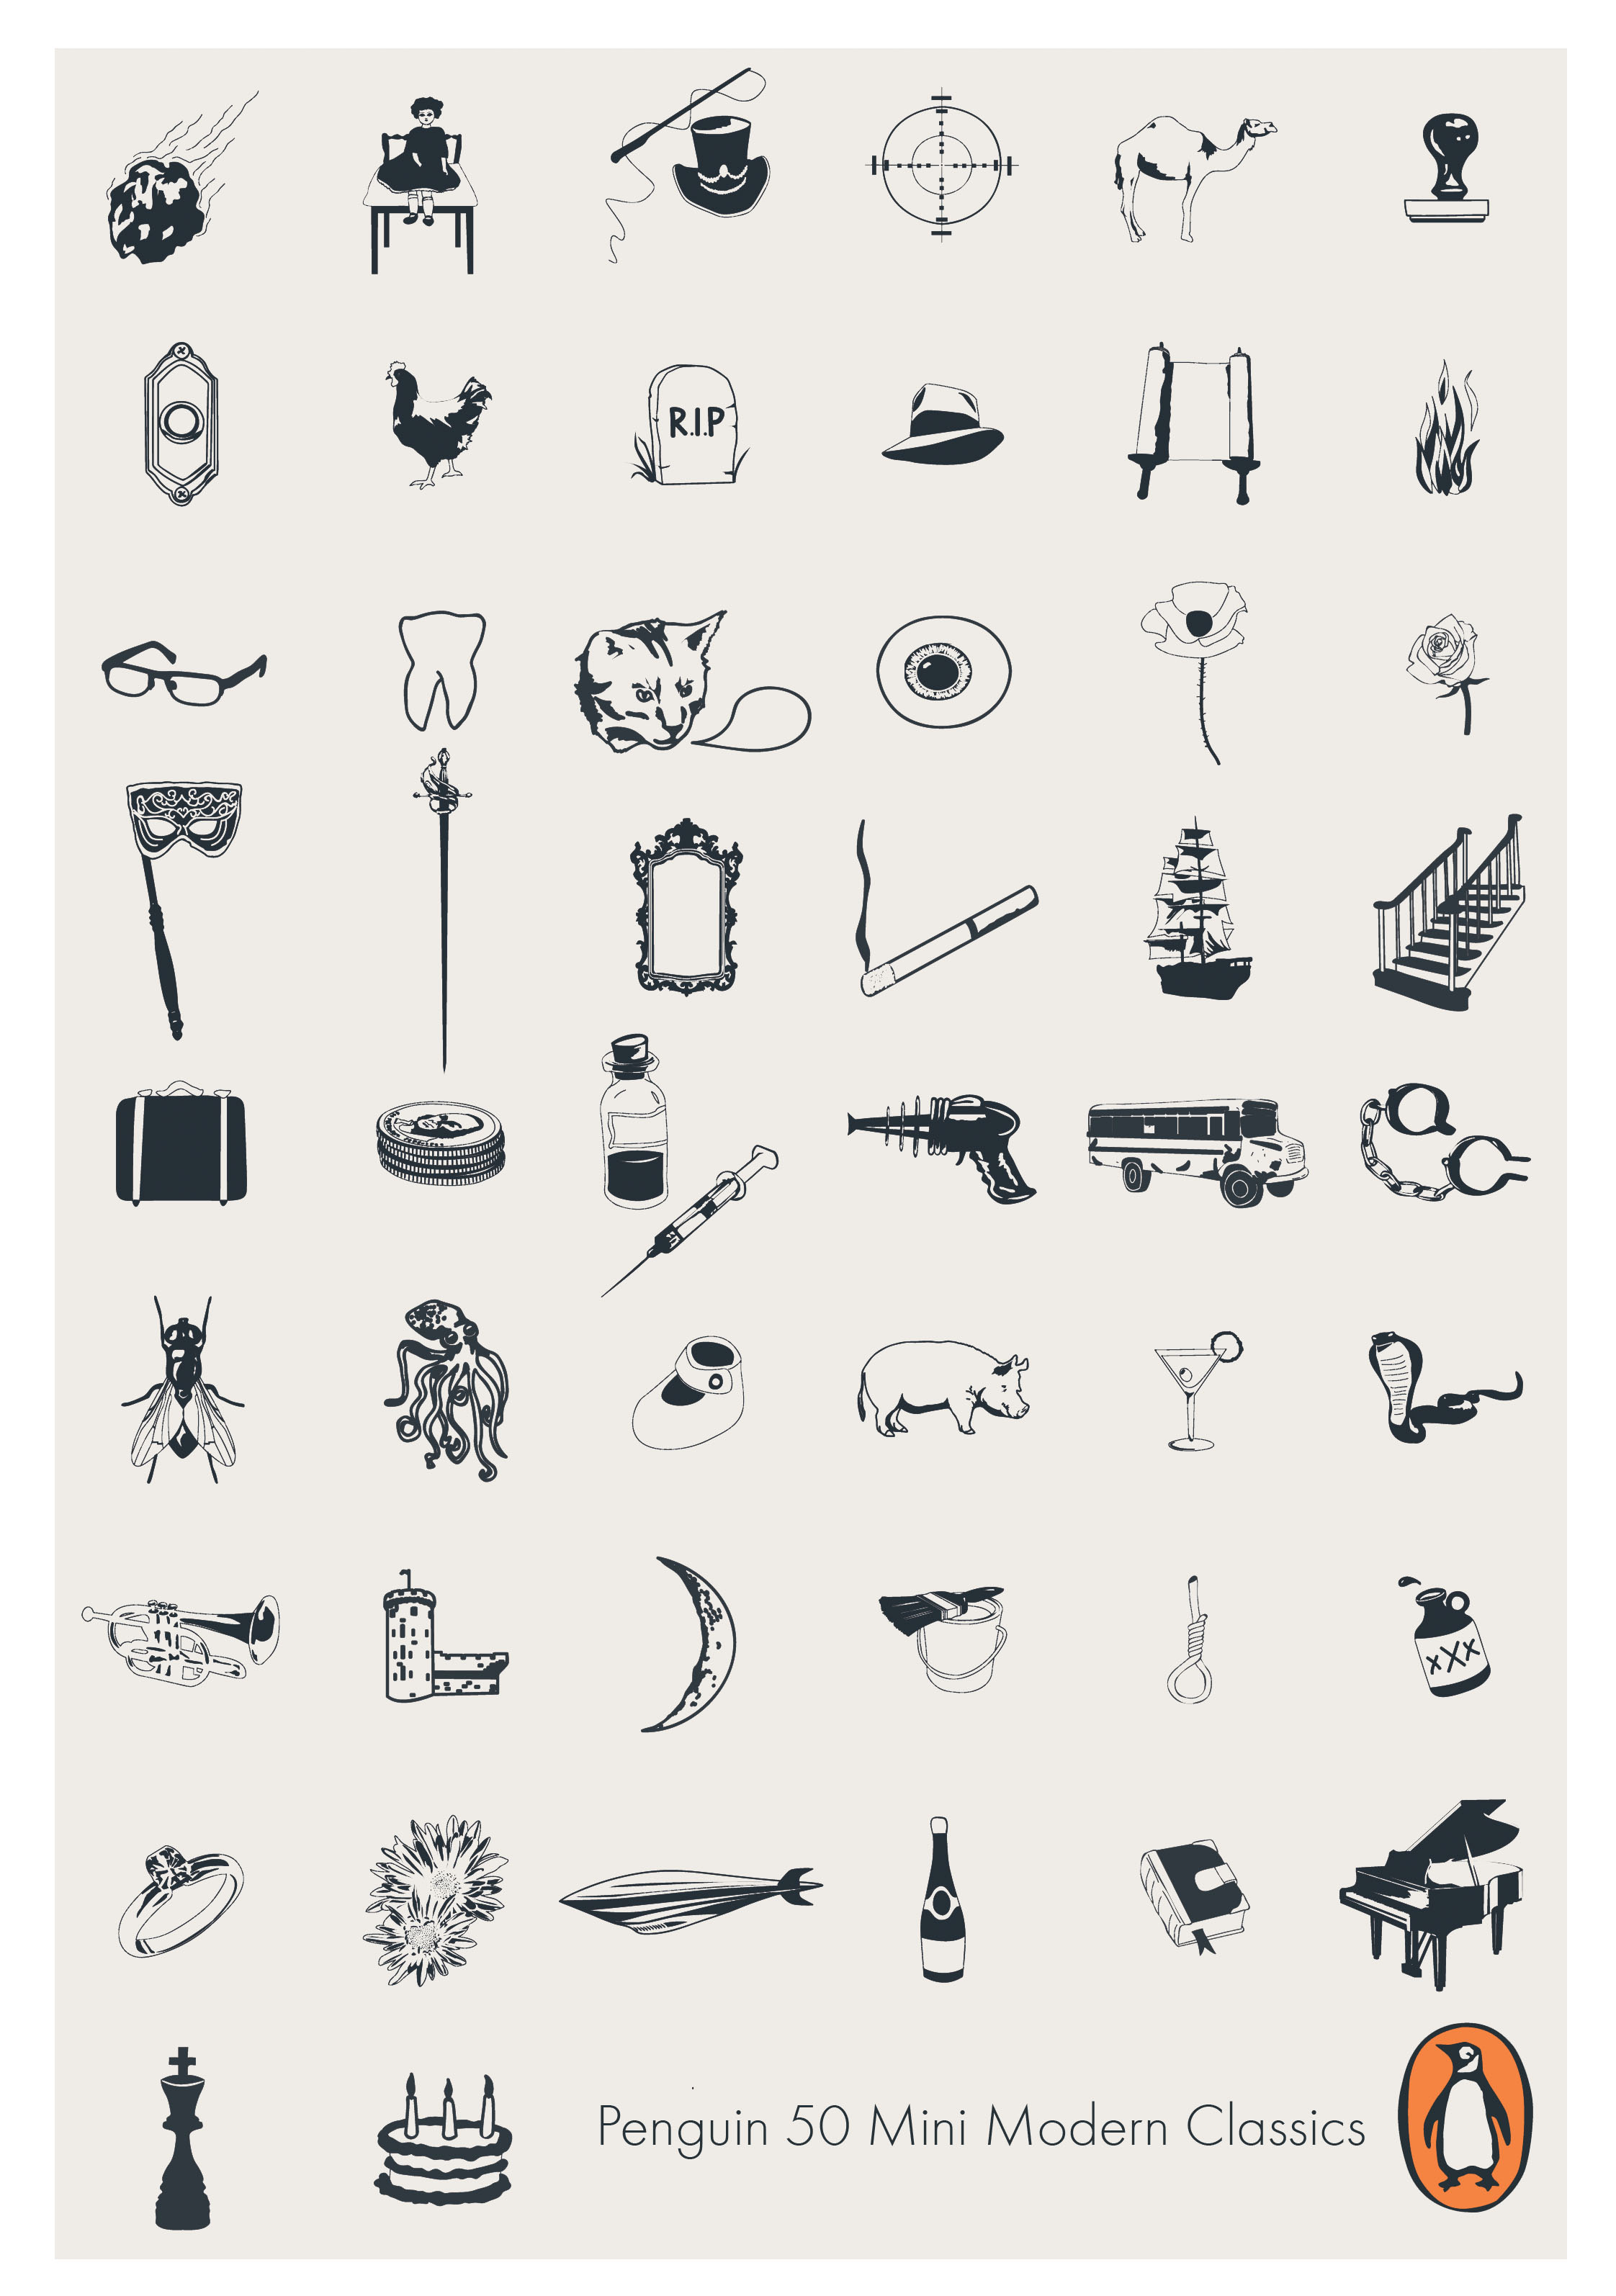 50 icon illustrations for a point of sale display at Penguin Books